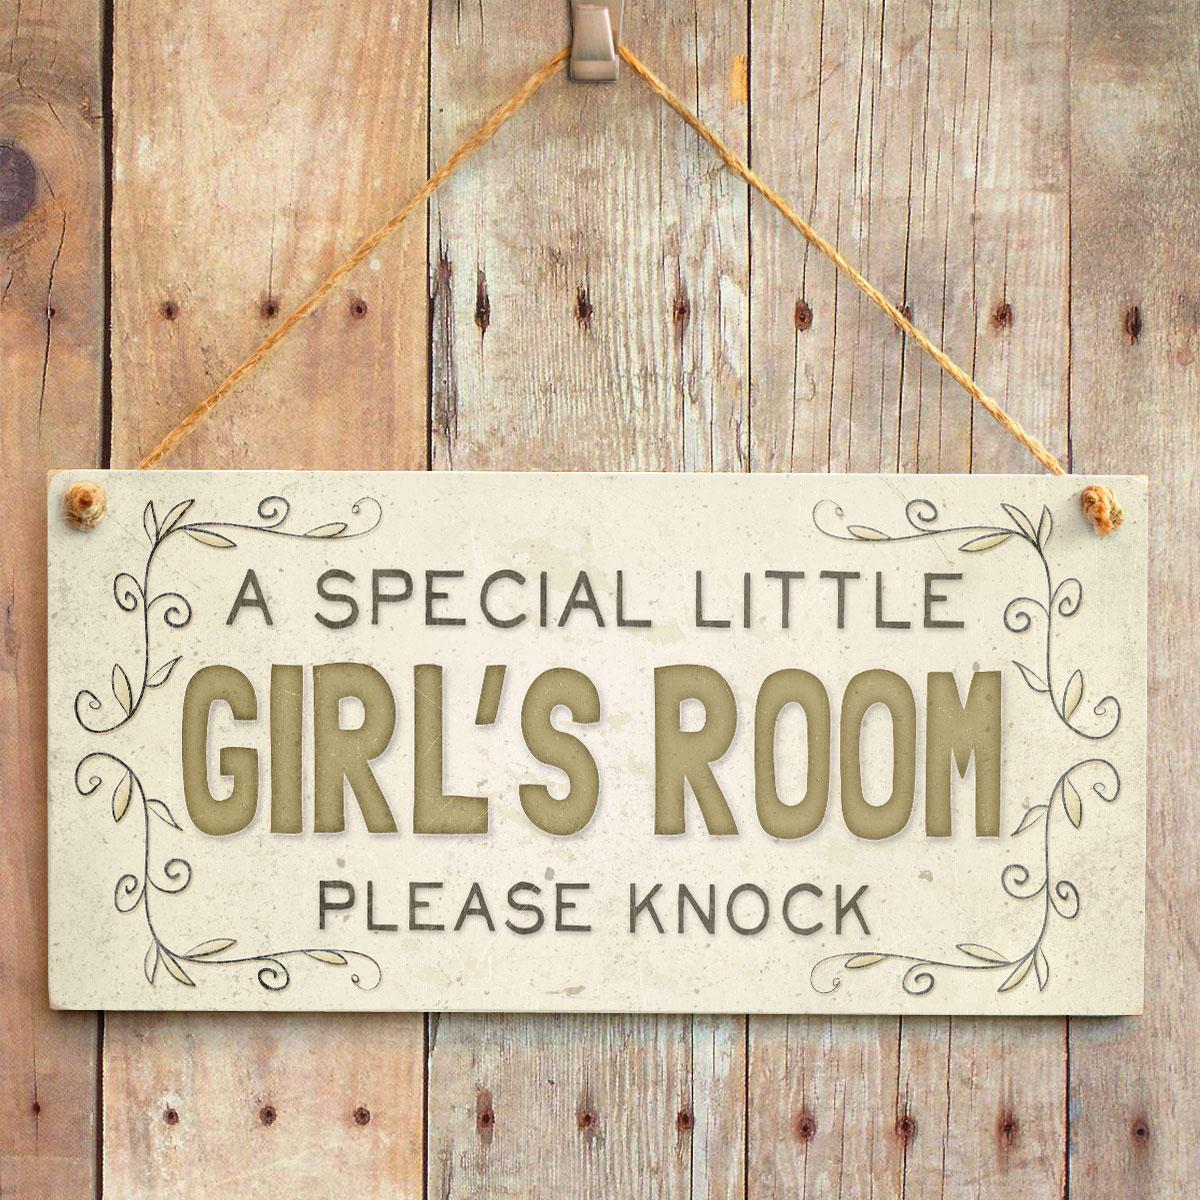 A special little girl 39 s room please knock kid 39 s room for Signs for little girl rooms